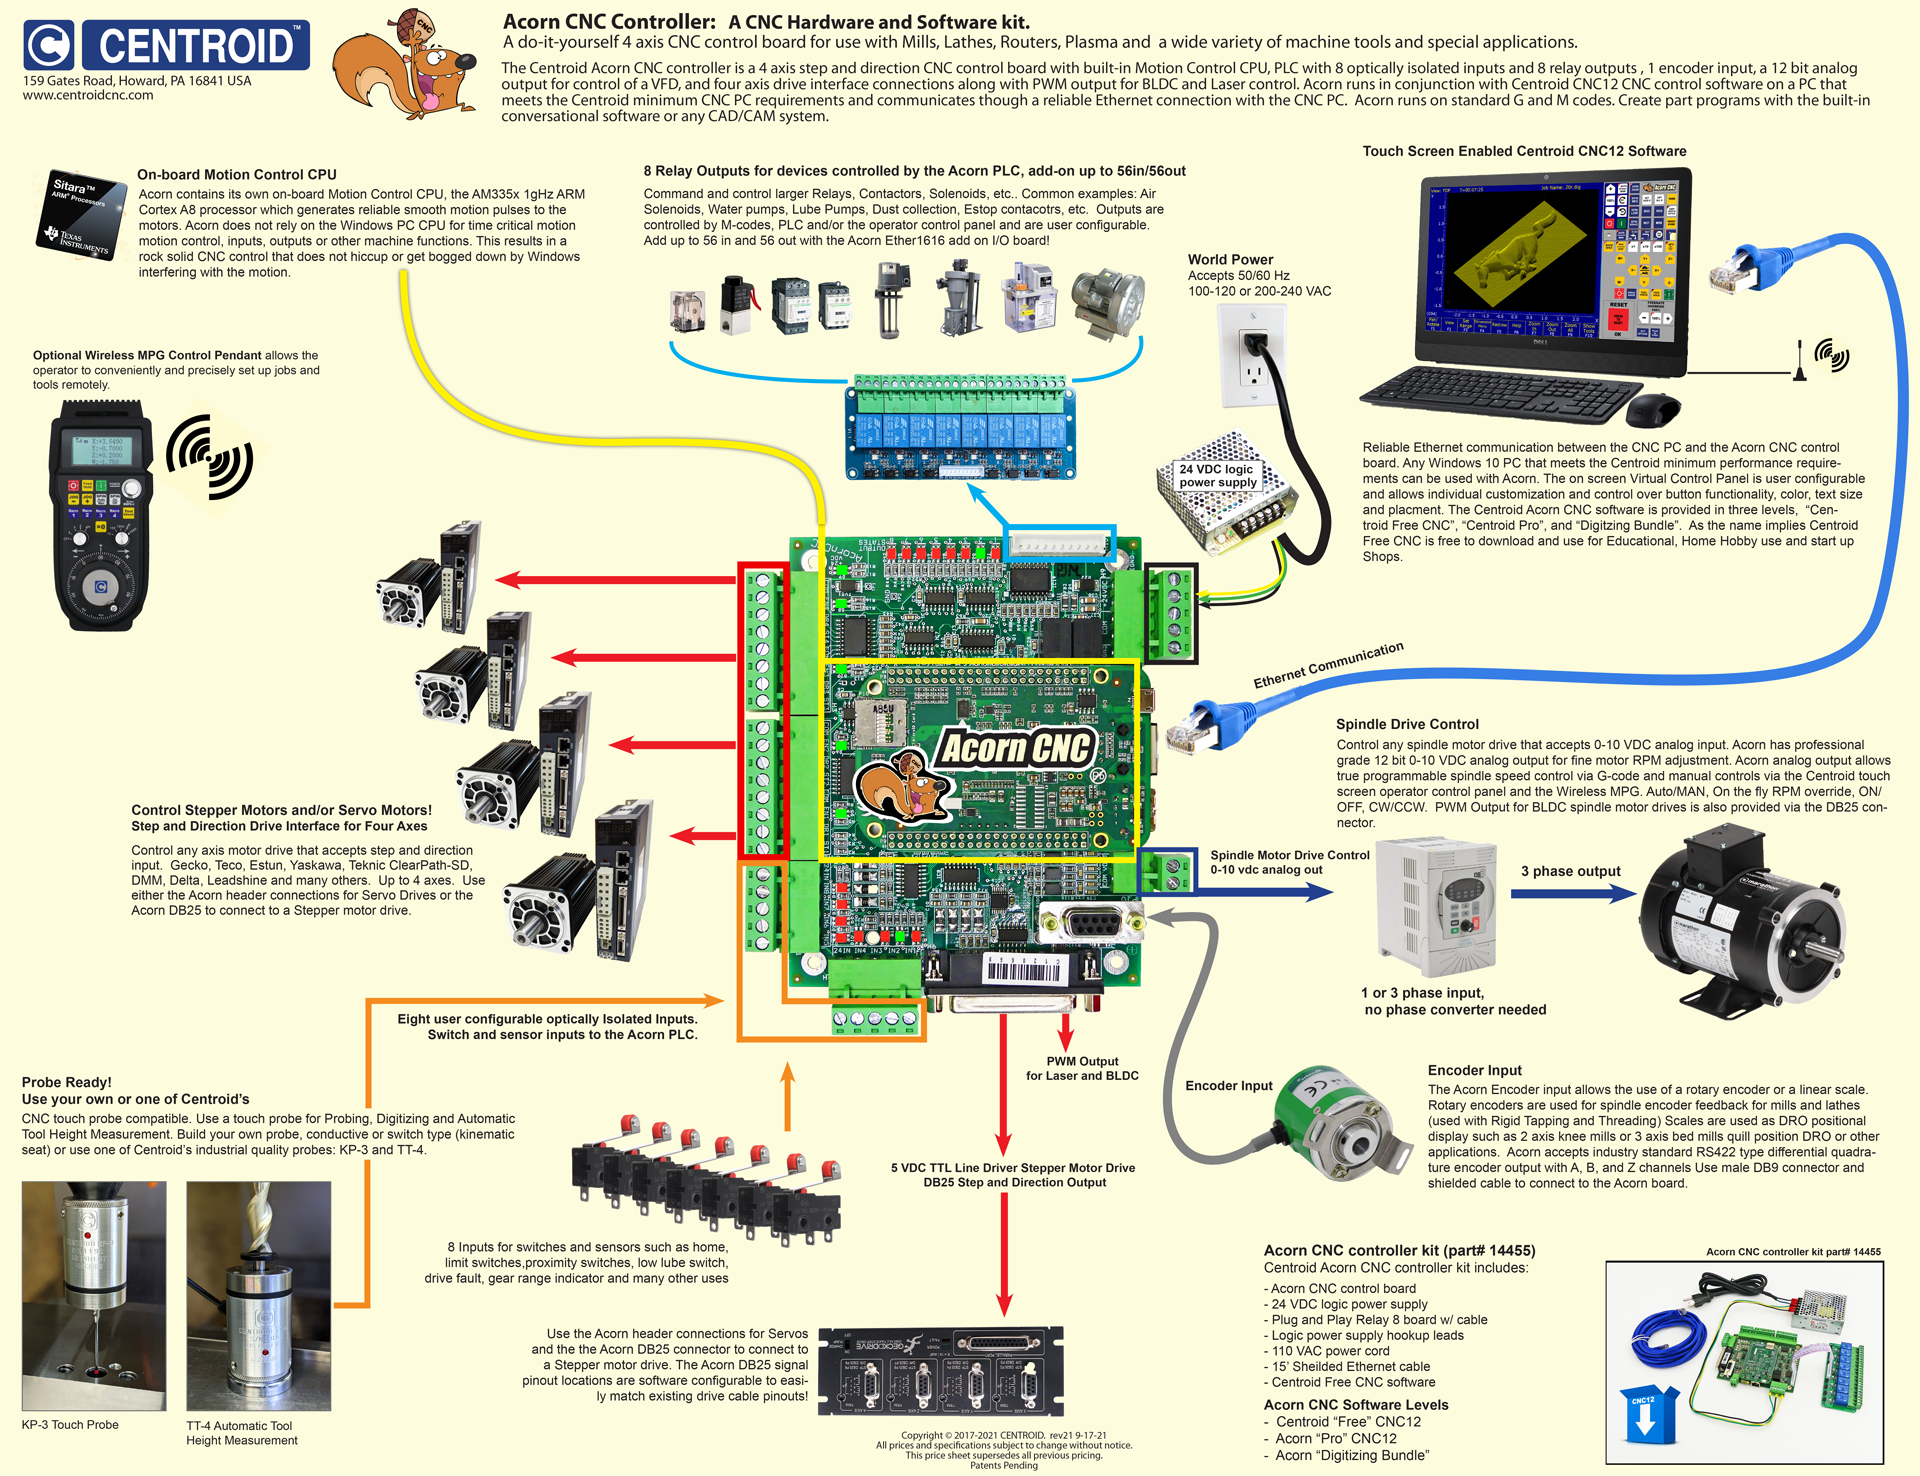 Usb Cnc Controller Schematic on cnc parallel port controller schematic, usb keyboard schematic, usb power supply schematic,